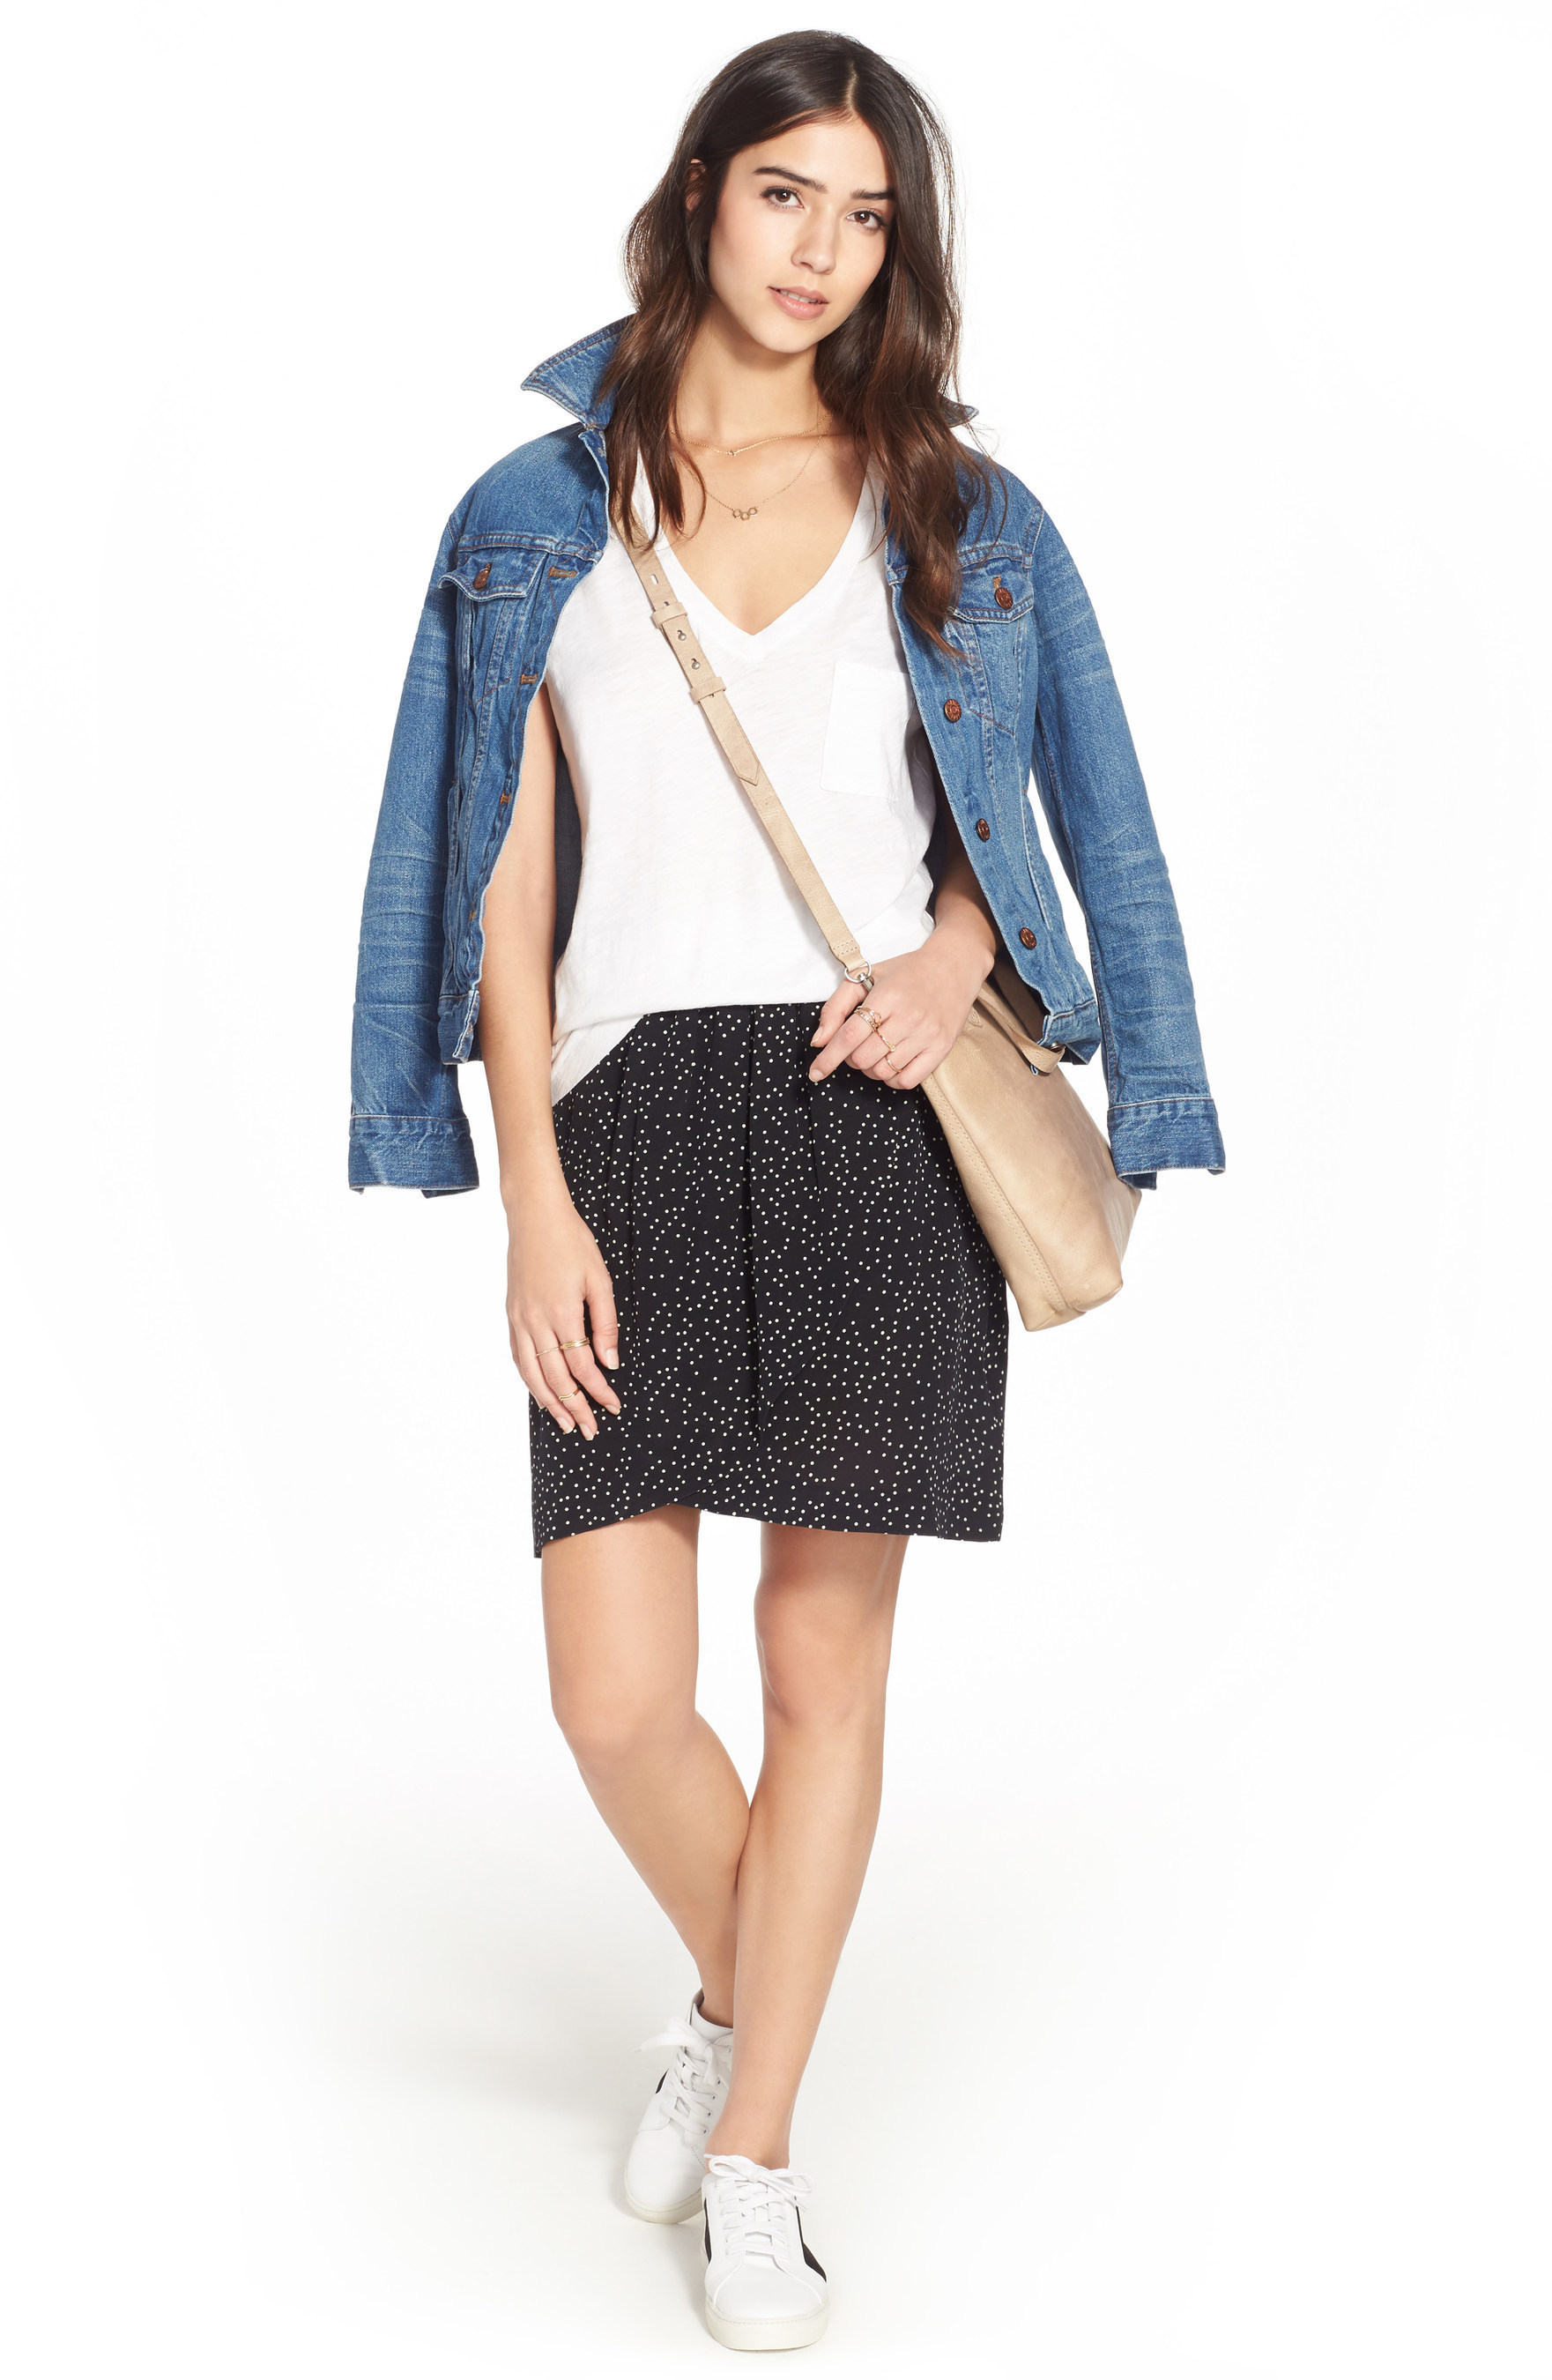 db6cde58a02 Nordstrom Expands Madewell Partnership To 20 Additional Stores This Fall